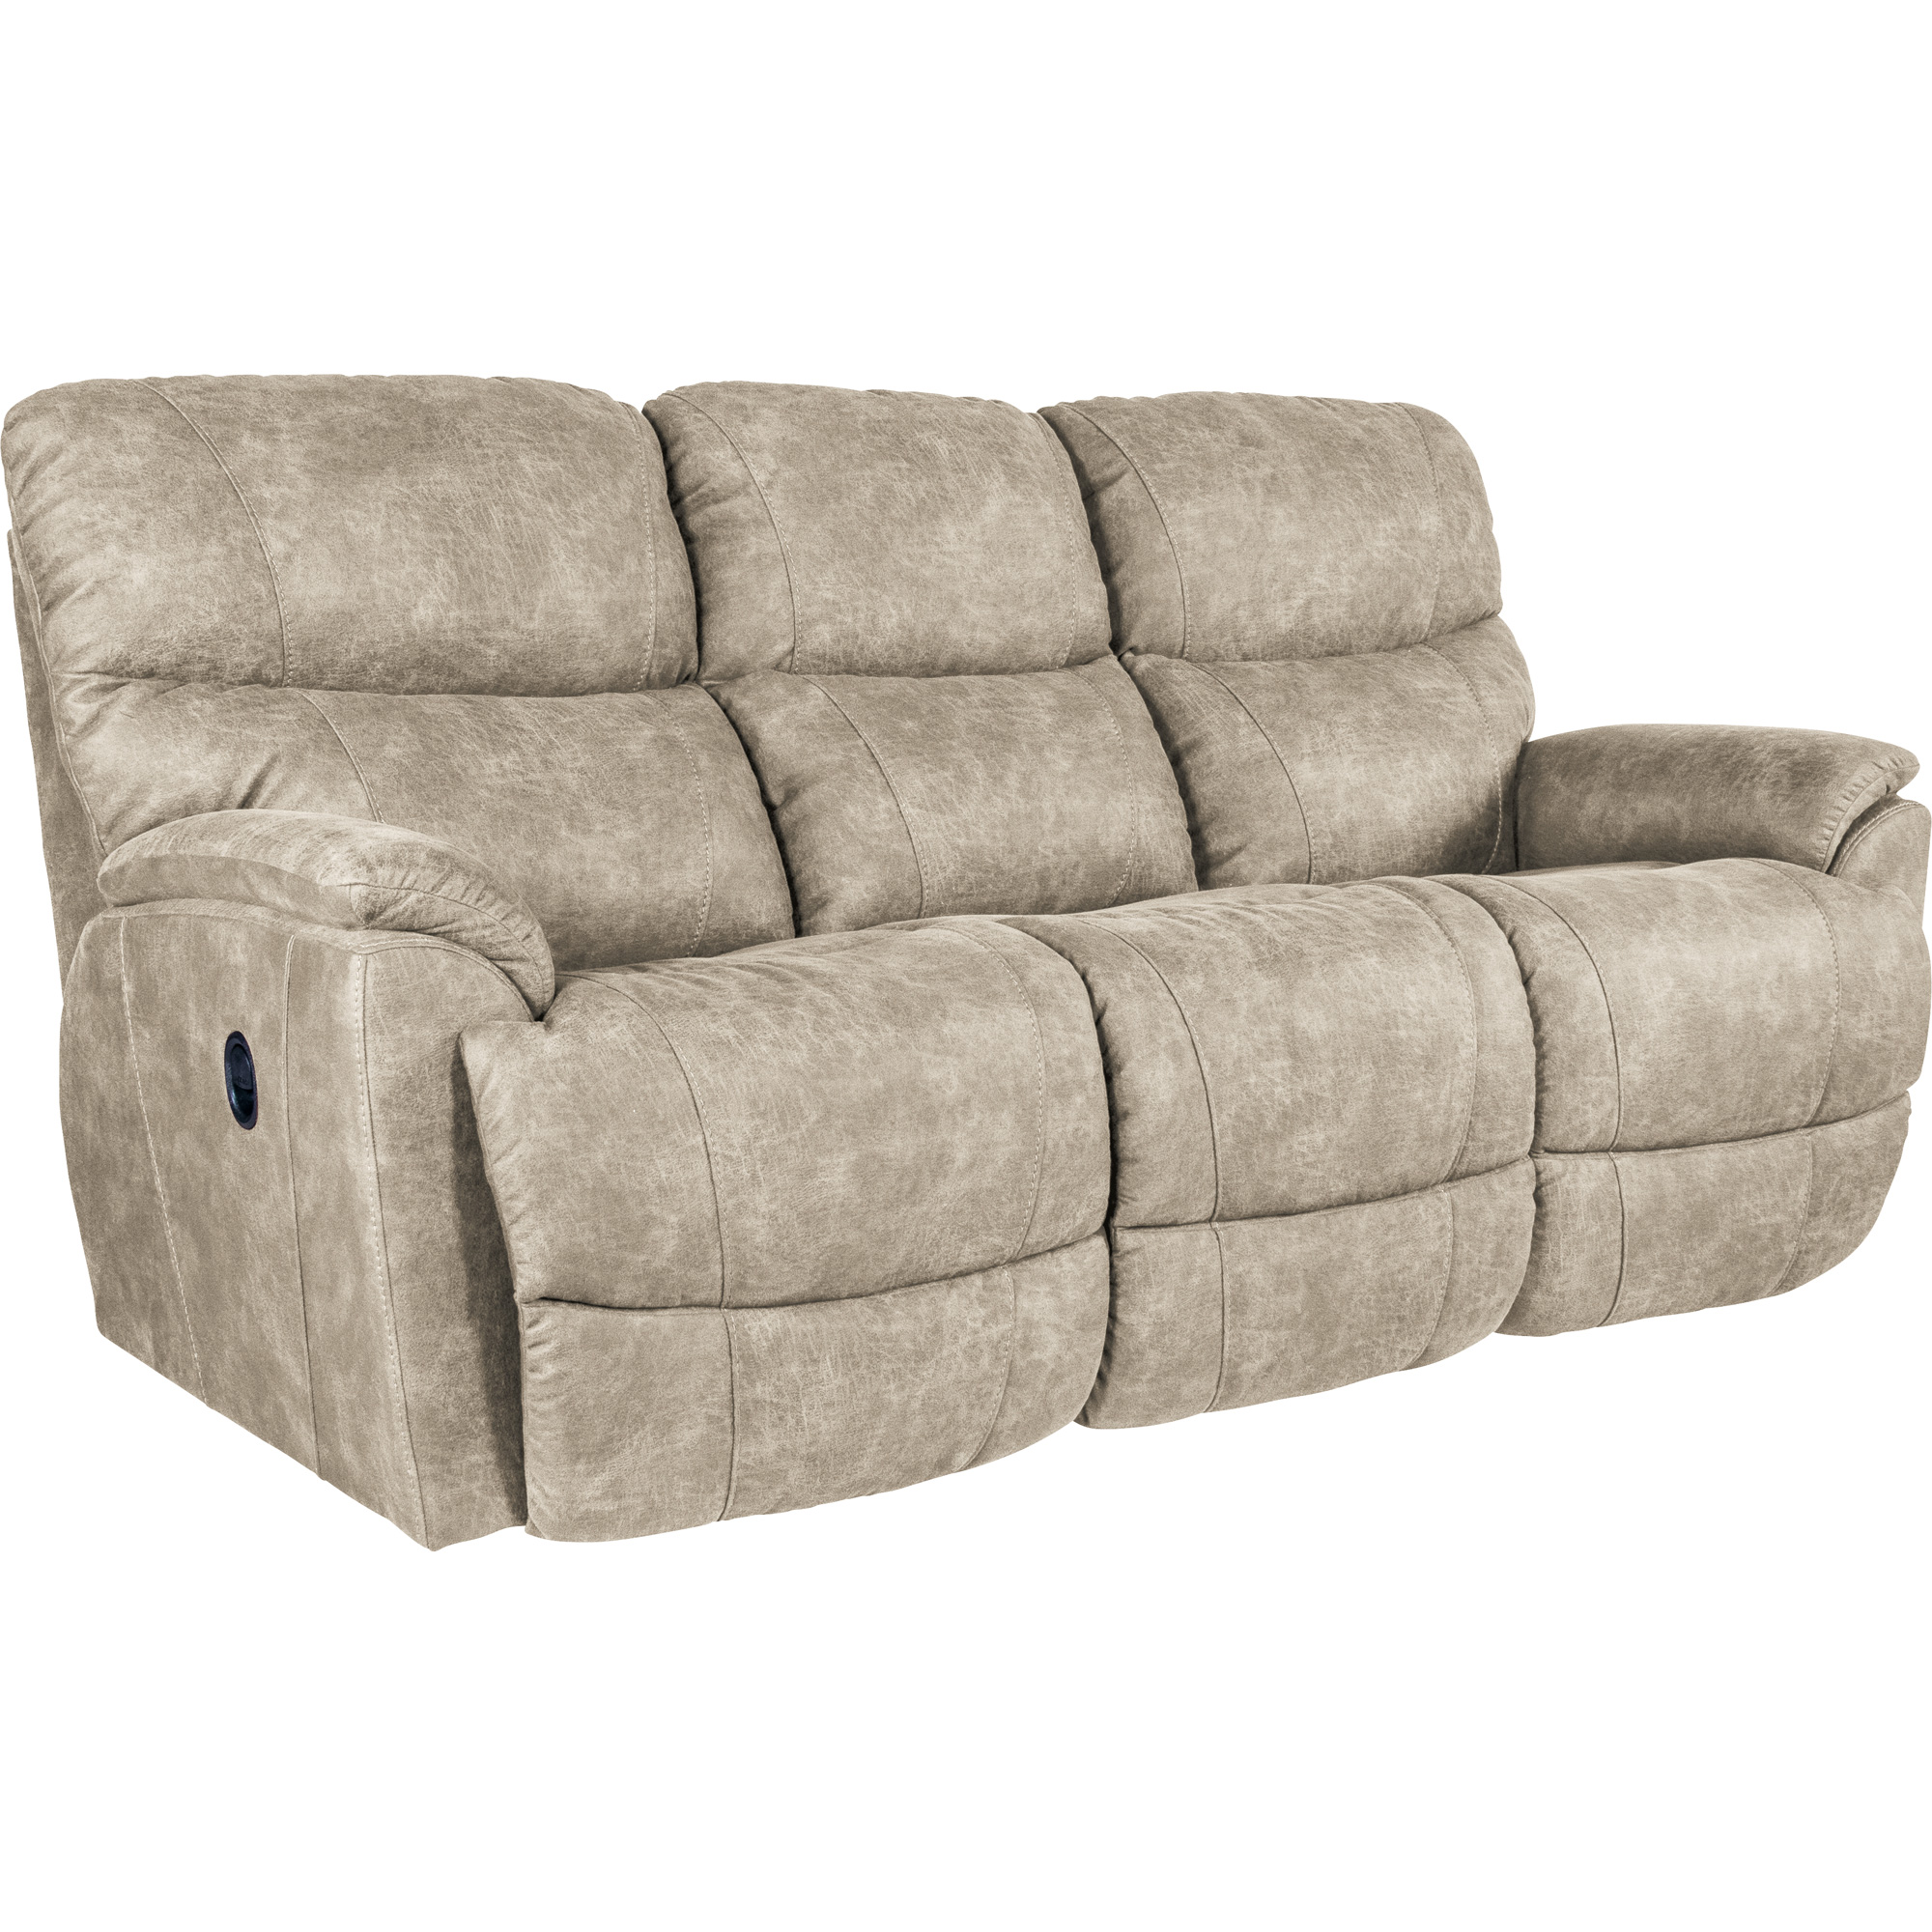 La-Z-Boy | Trouper Stucco Reclining Sofa